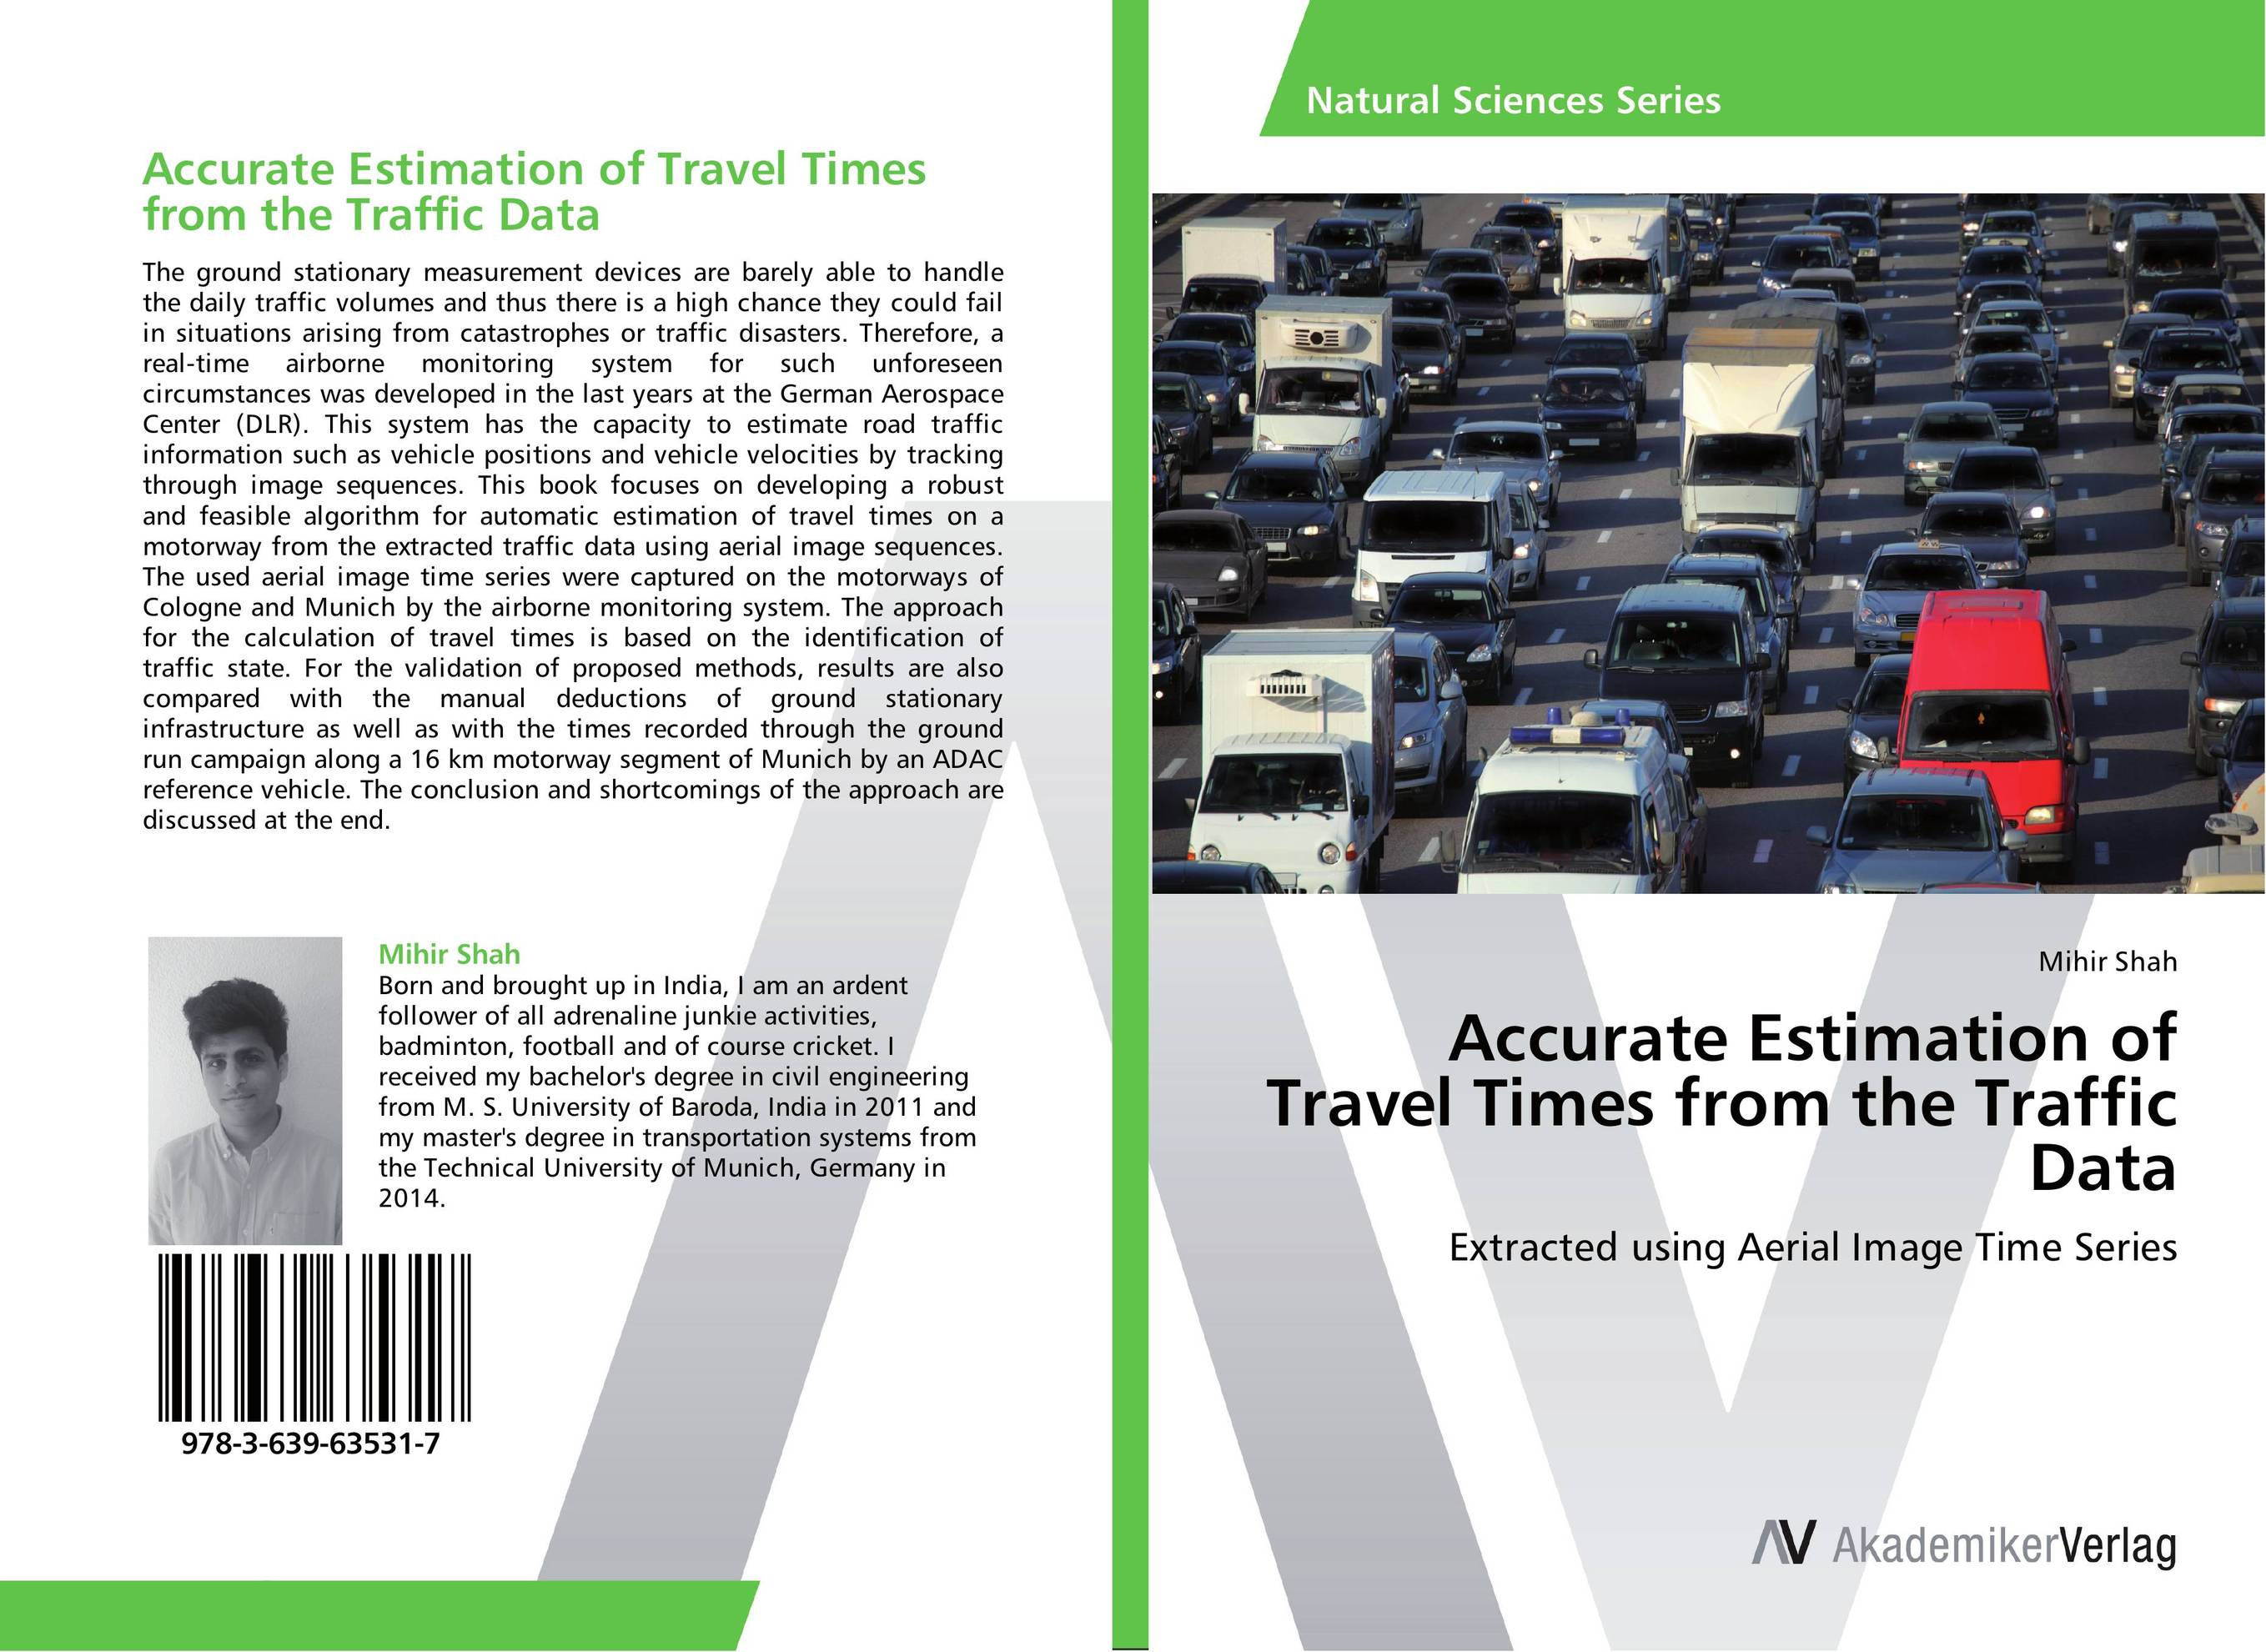 Accurate Estimation of Travel Times from the Traffic Data raised from the ground